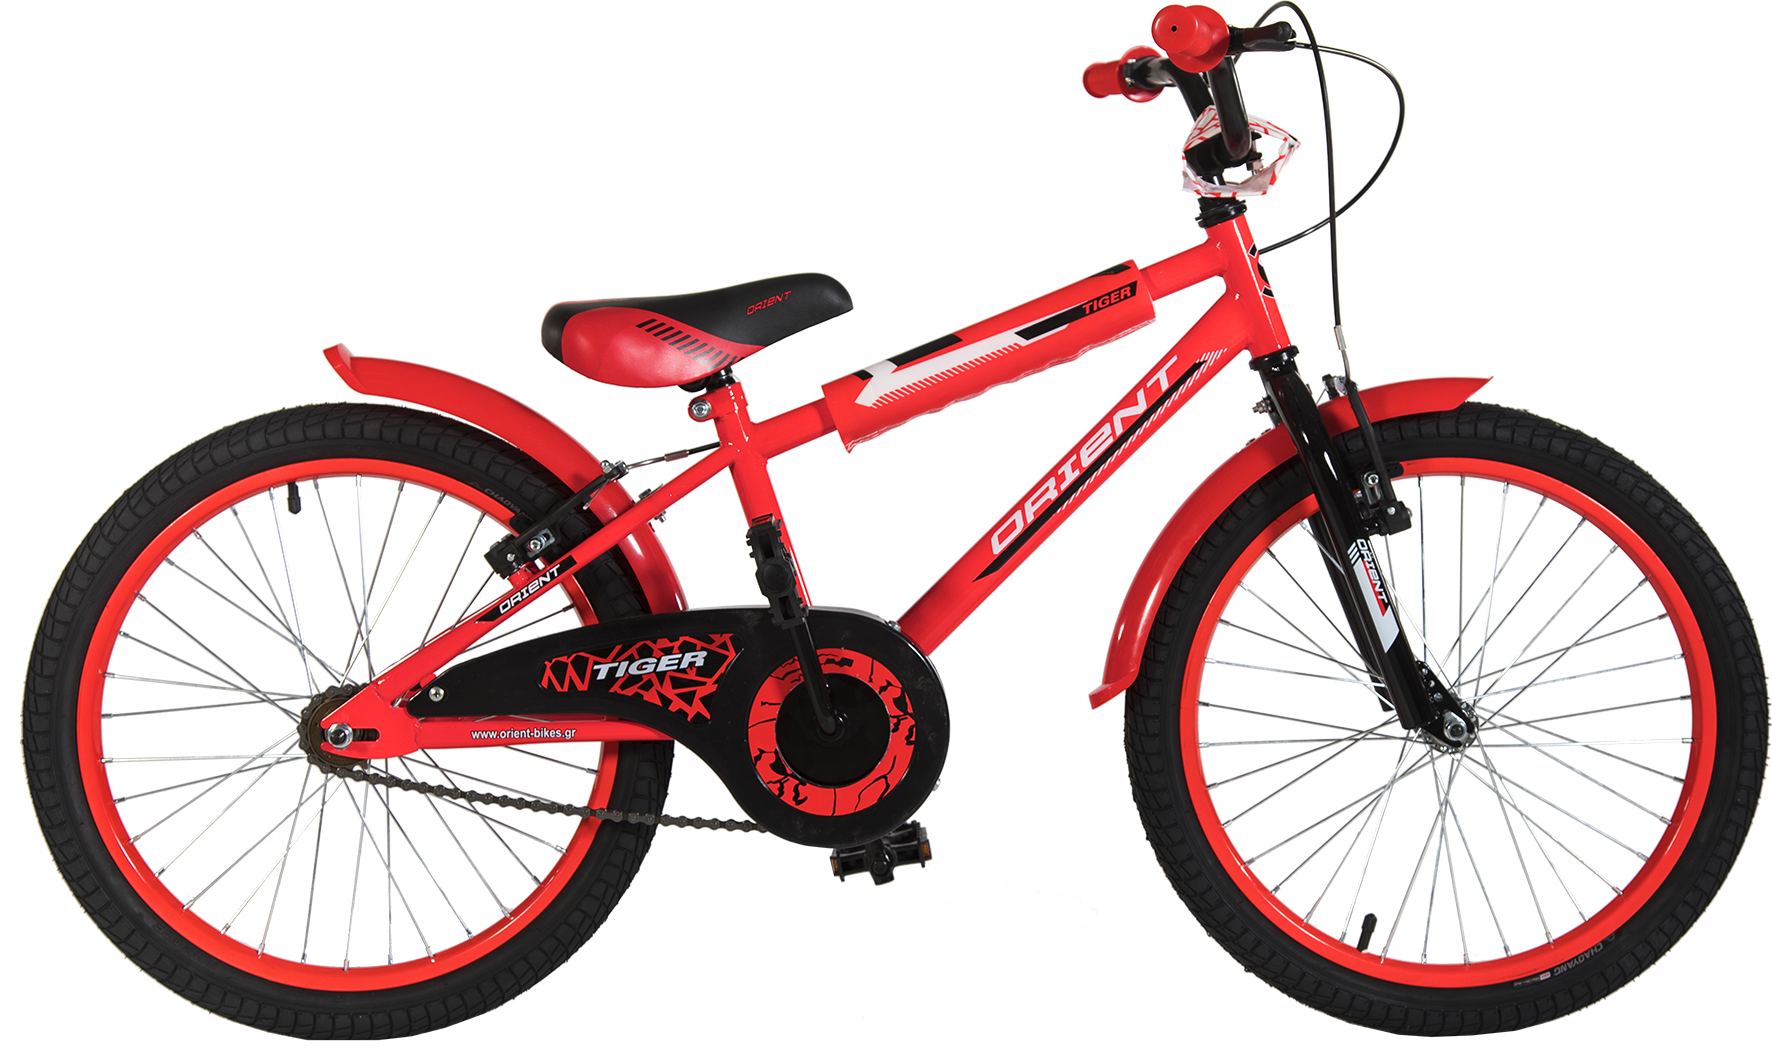 TIGER 20″ v-brake bike image